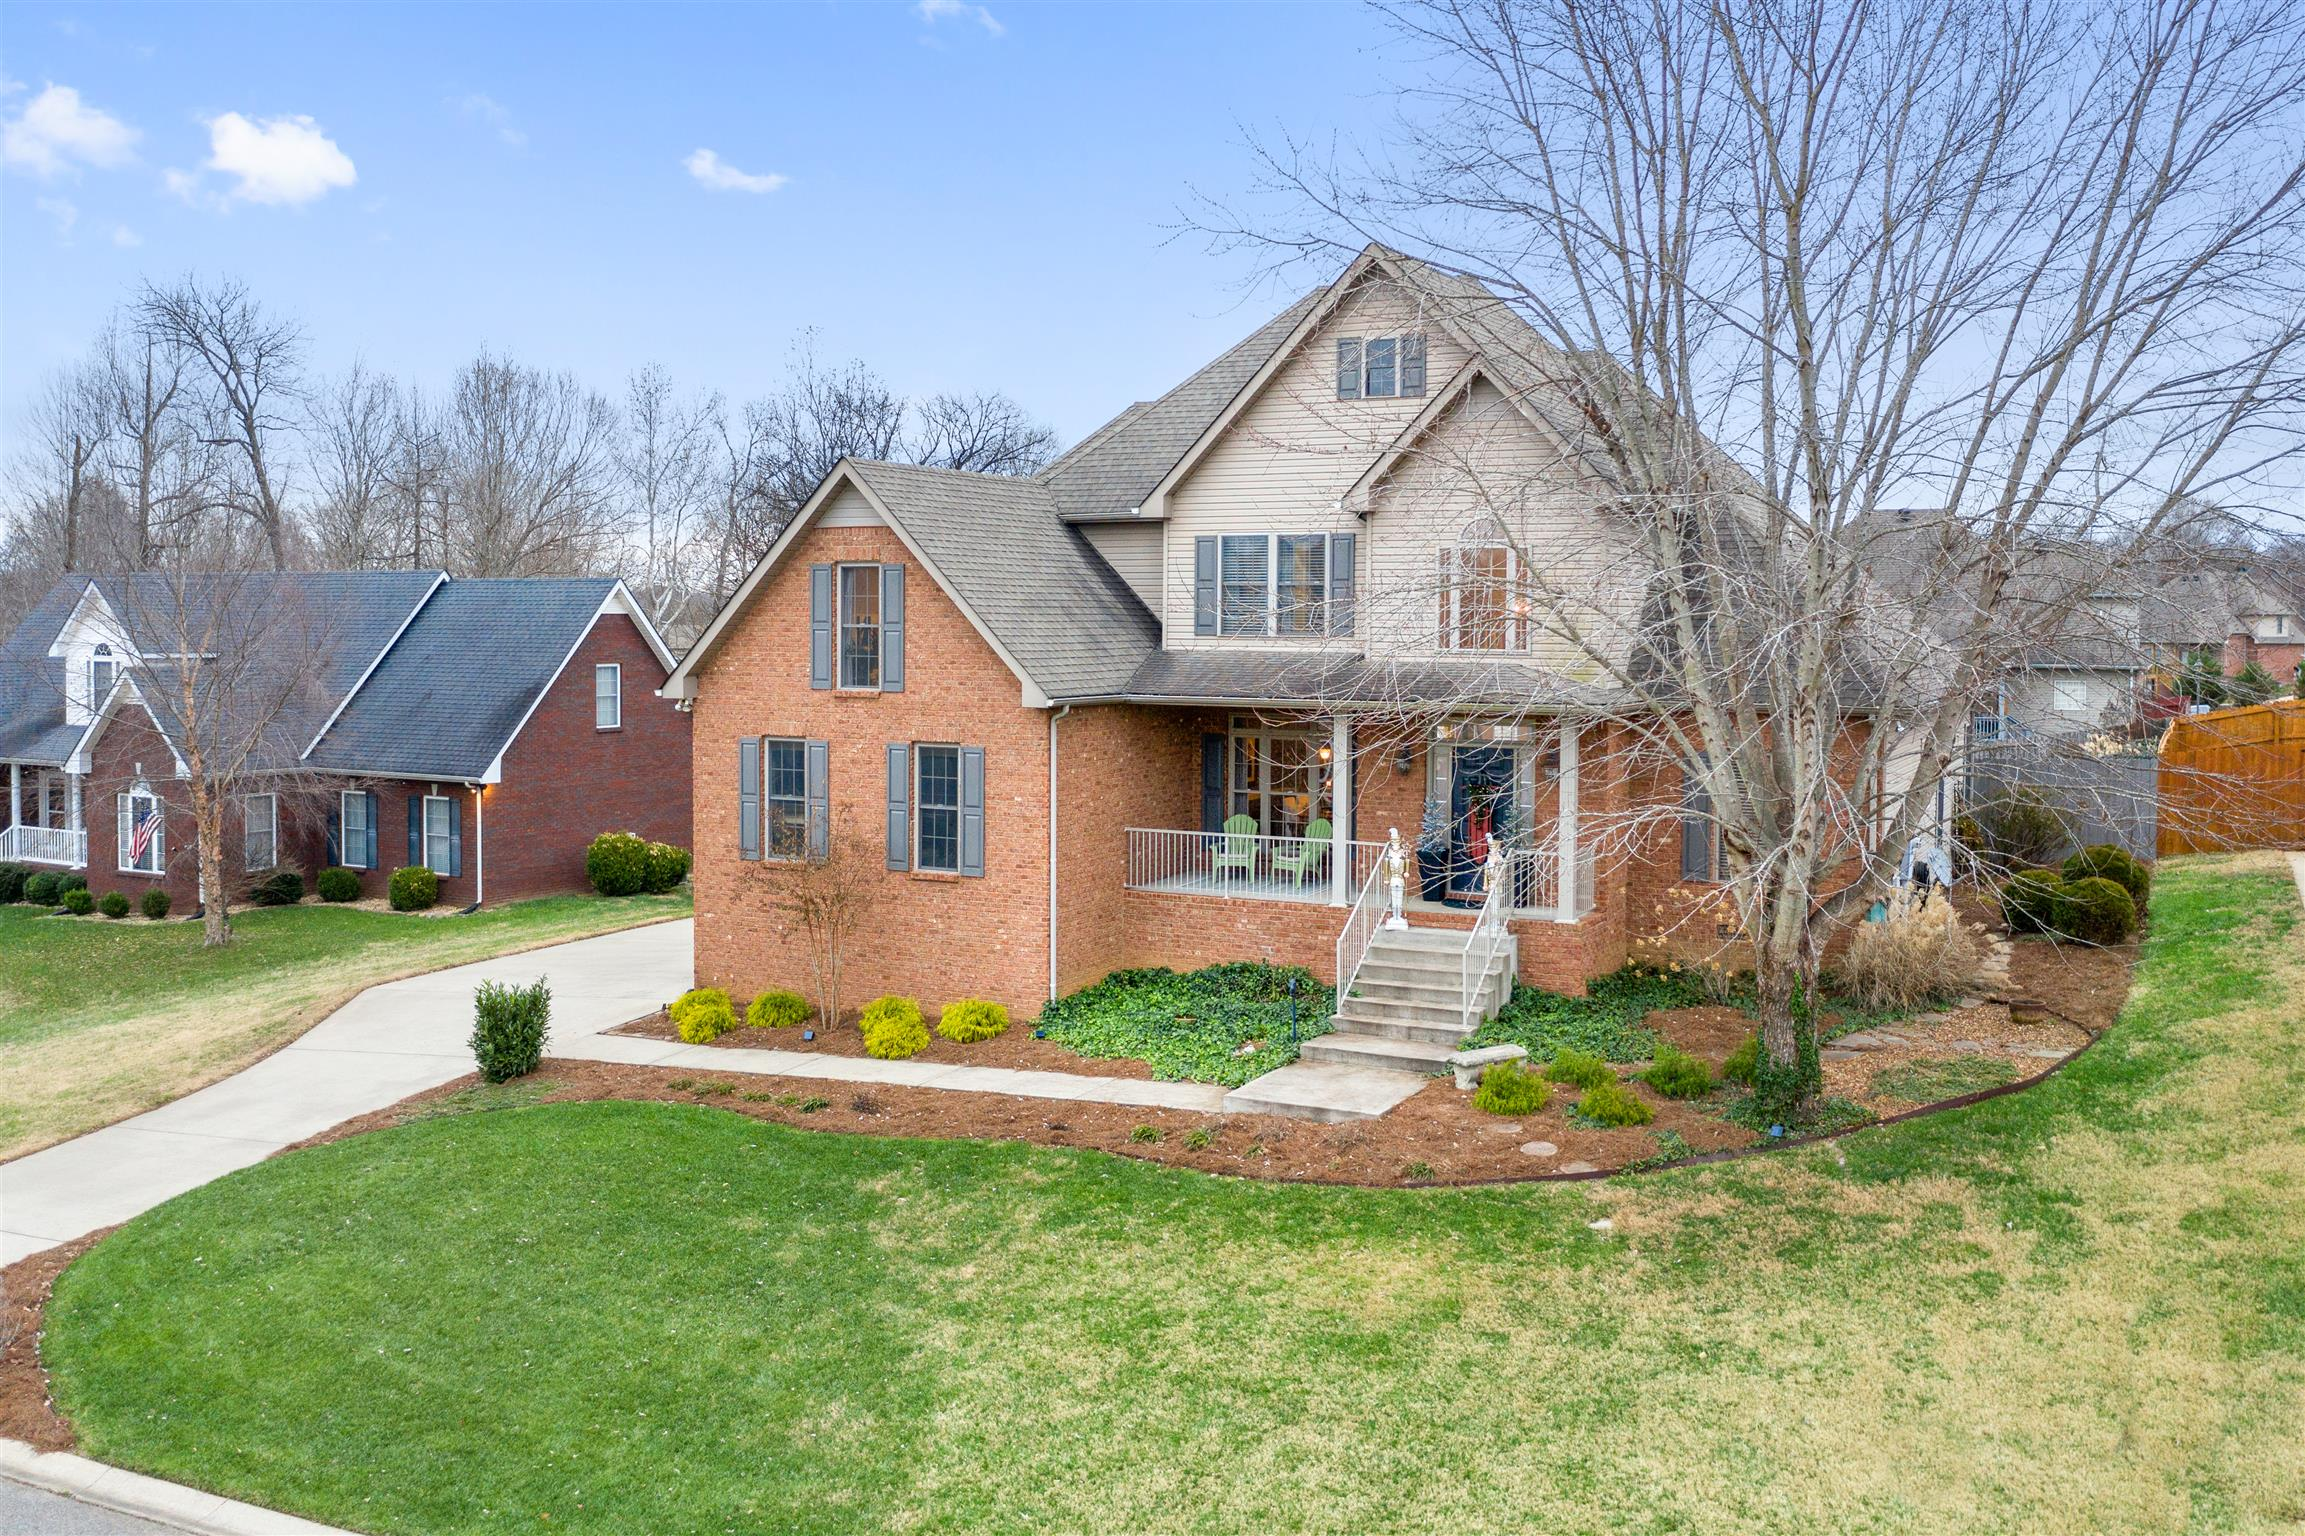 1141 Winding Creek Ct, Clarksville in Montgomery County County, TN 37043 Home for Sale